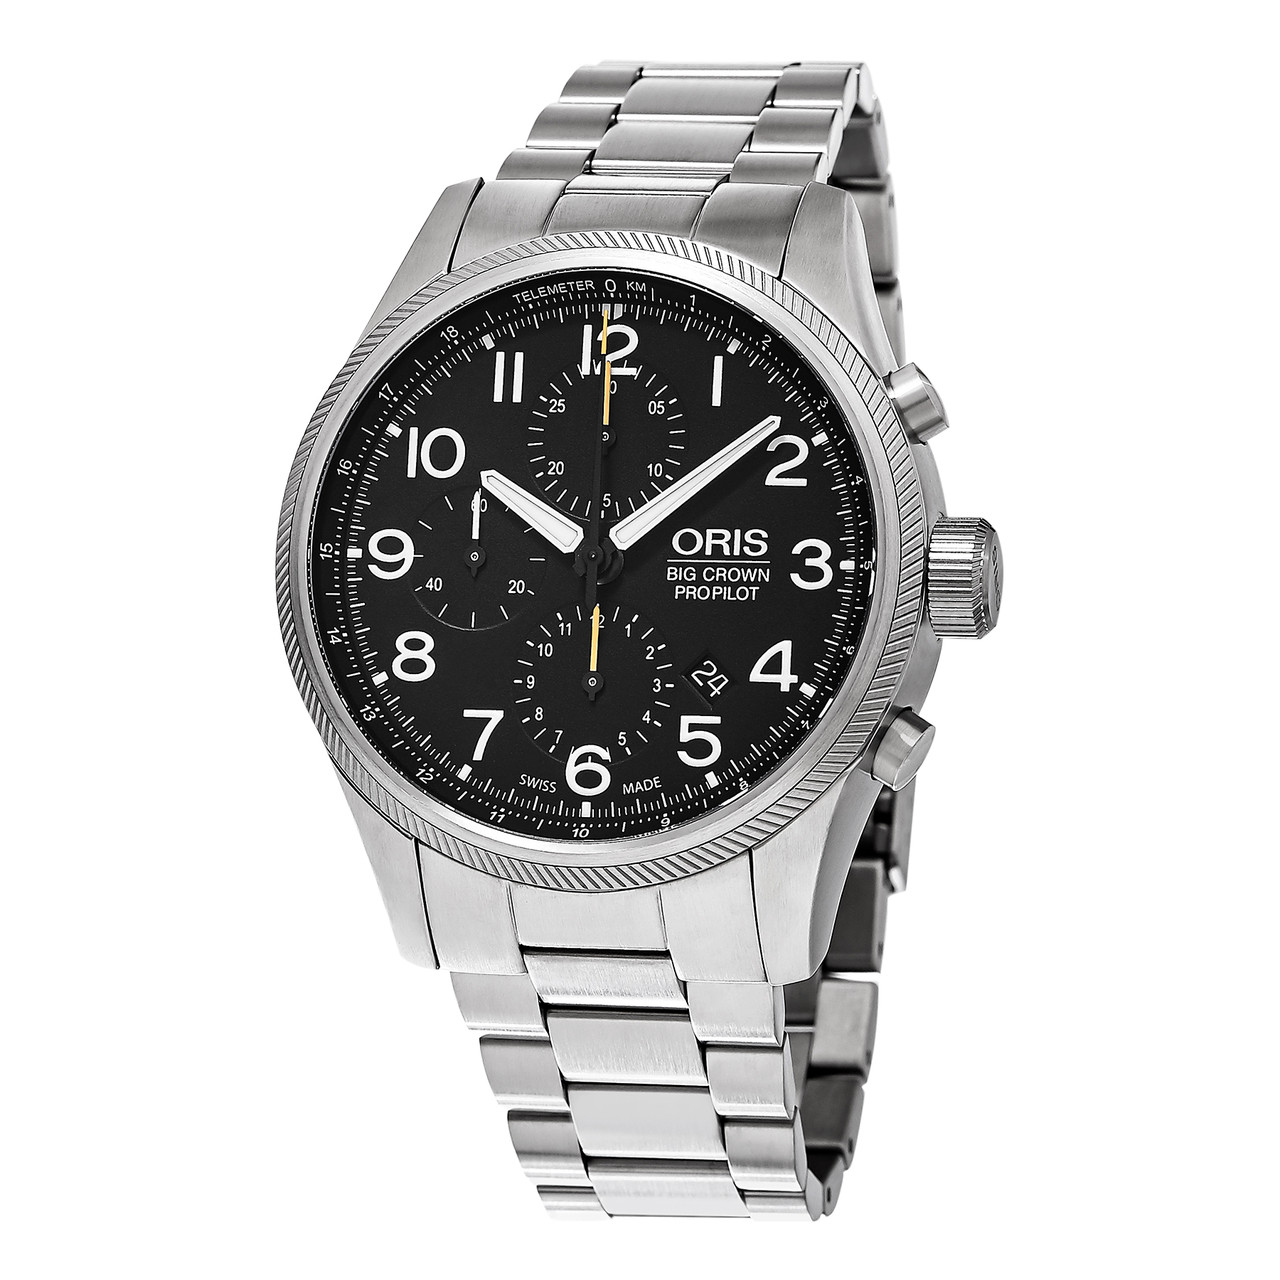 6c1aaee04 ... Oris Men's 774 7699 4134 MB 'Big Crown' Stainless Steel Chronograph  Watch. Image 1. Loading zoom